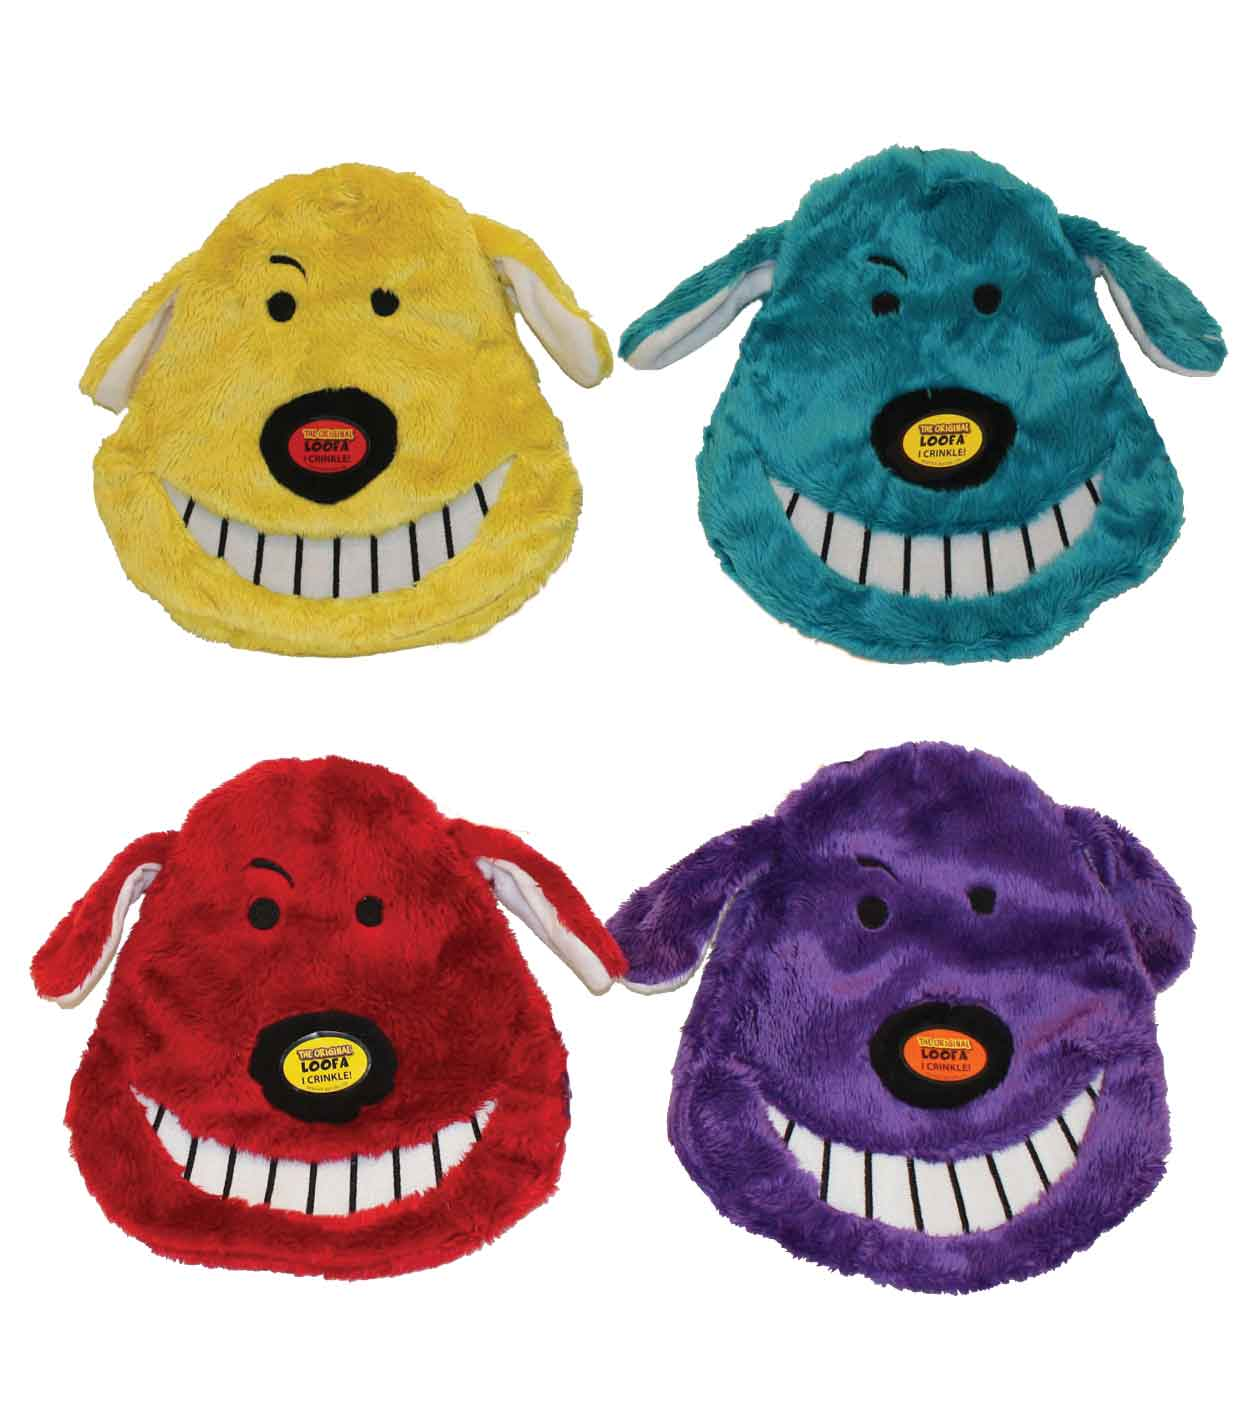 Multipet Loofa Head Dog Toy for Medium and Small Dogs - 6.5 inches